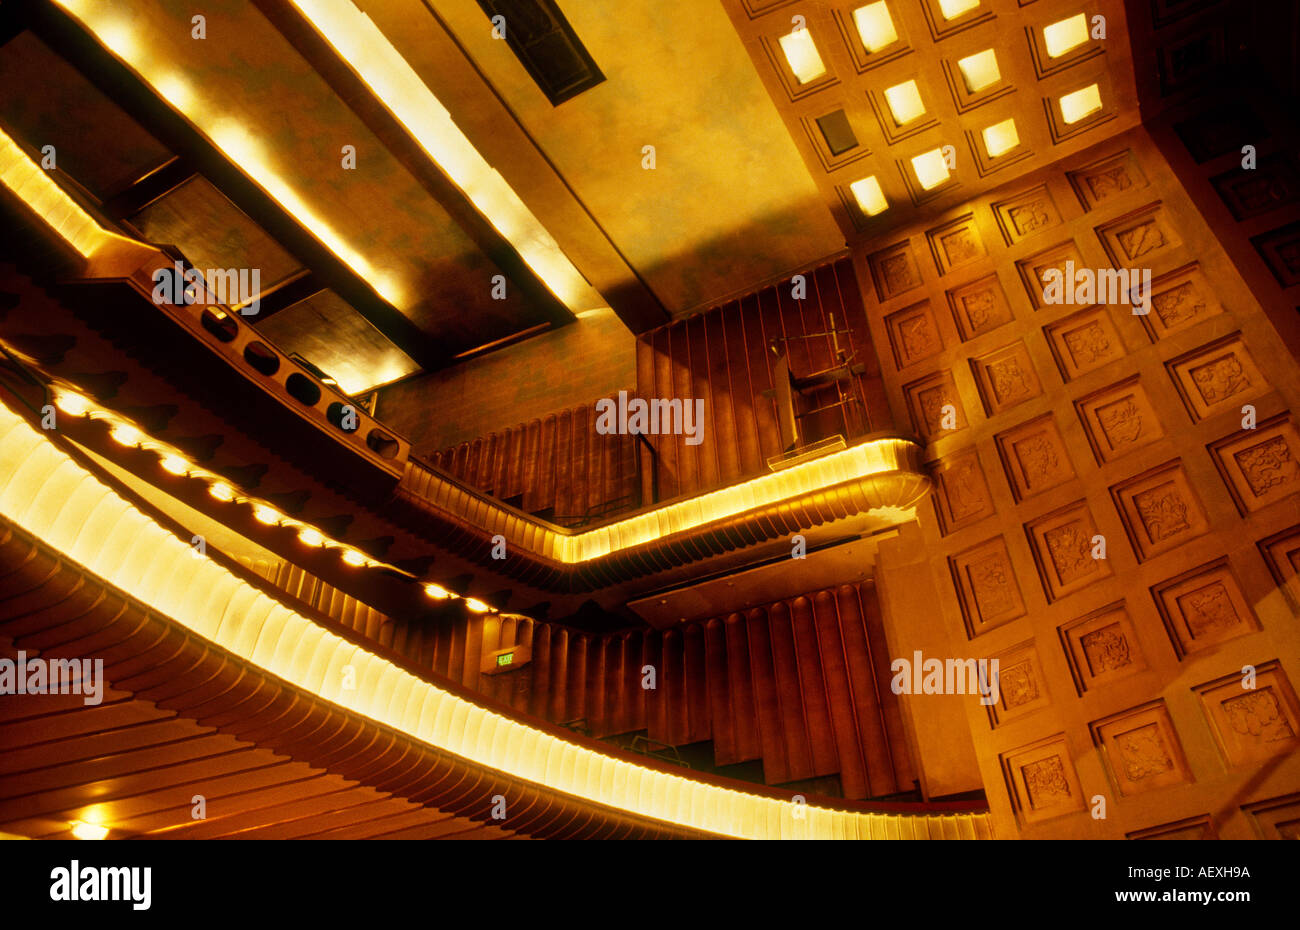 interior of the original savoy theatre london, art deco inspired